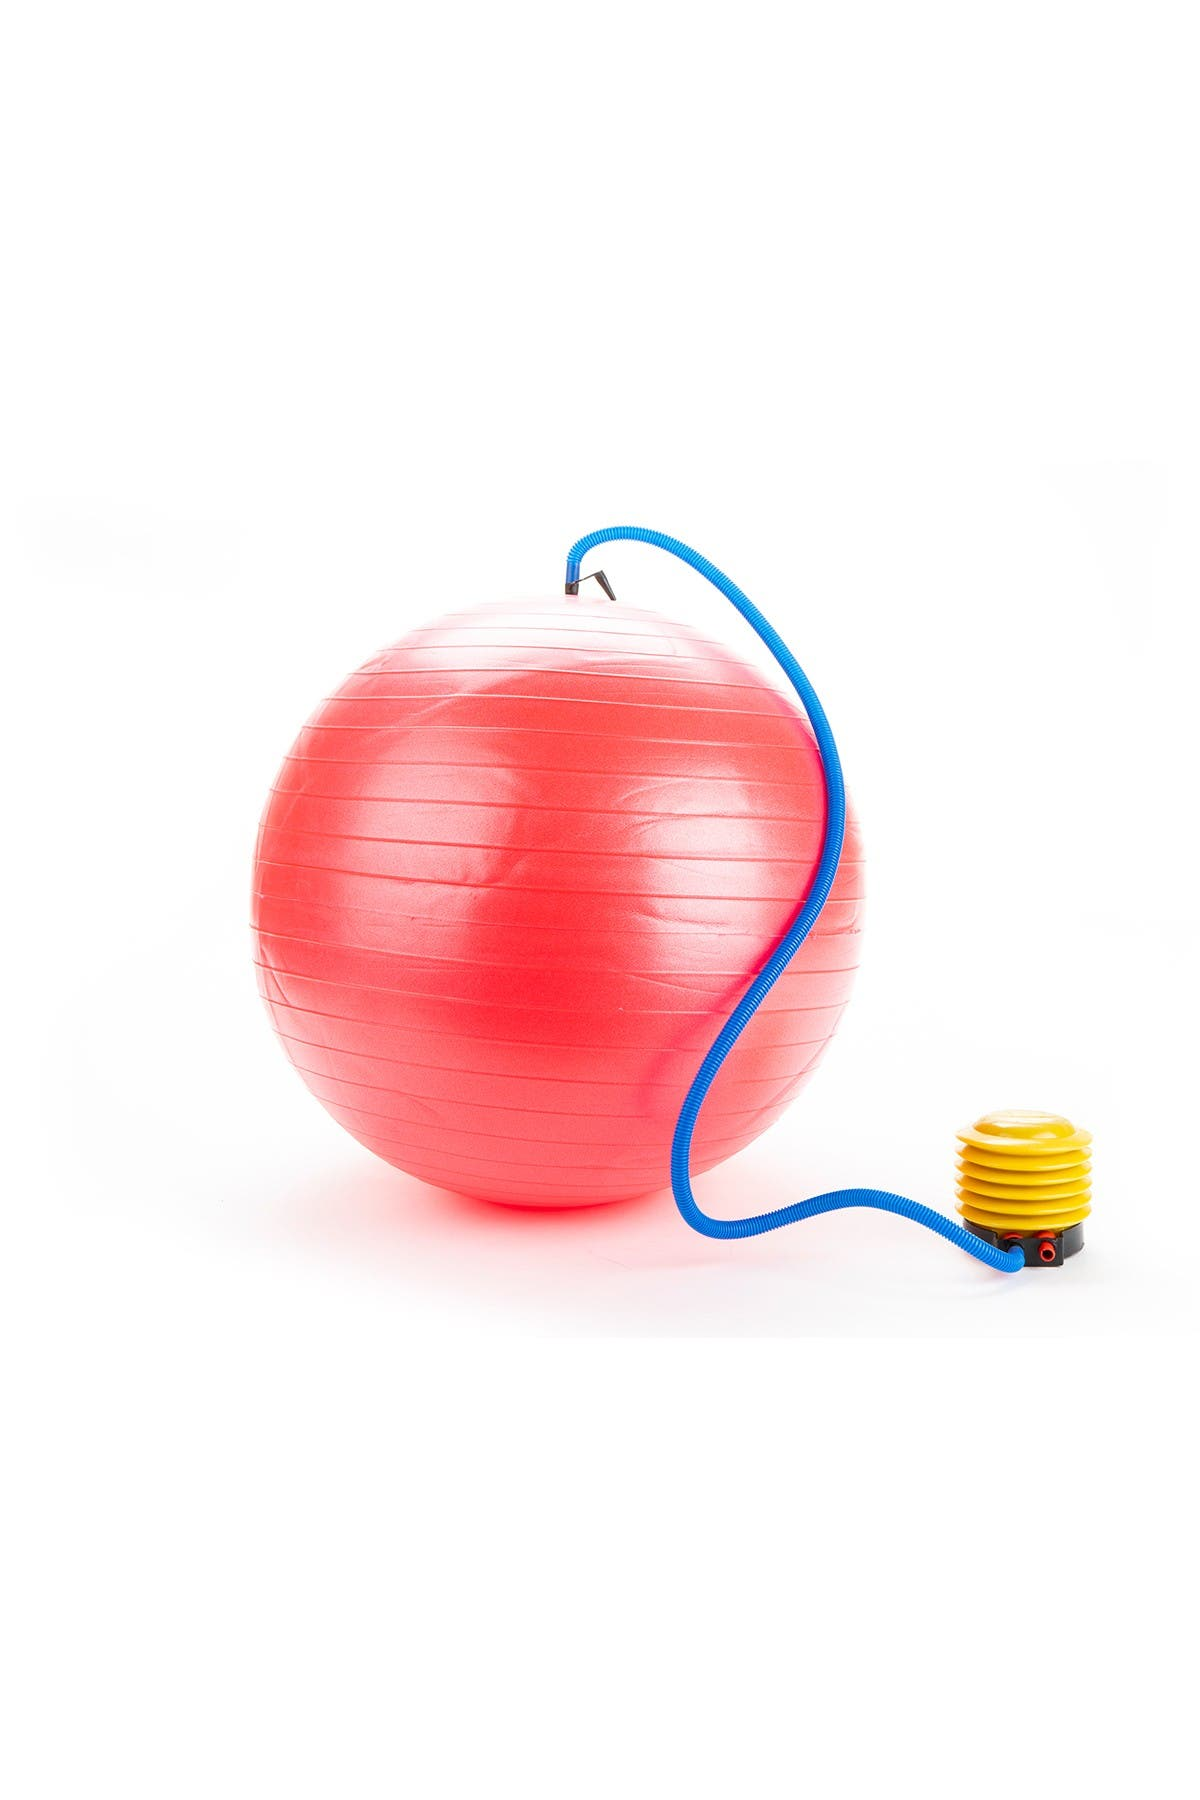 Image of Mindreader Large Exercise Yoga Ball & Quick Pump